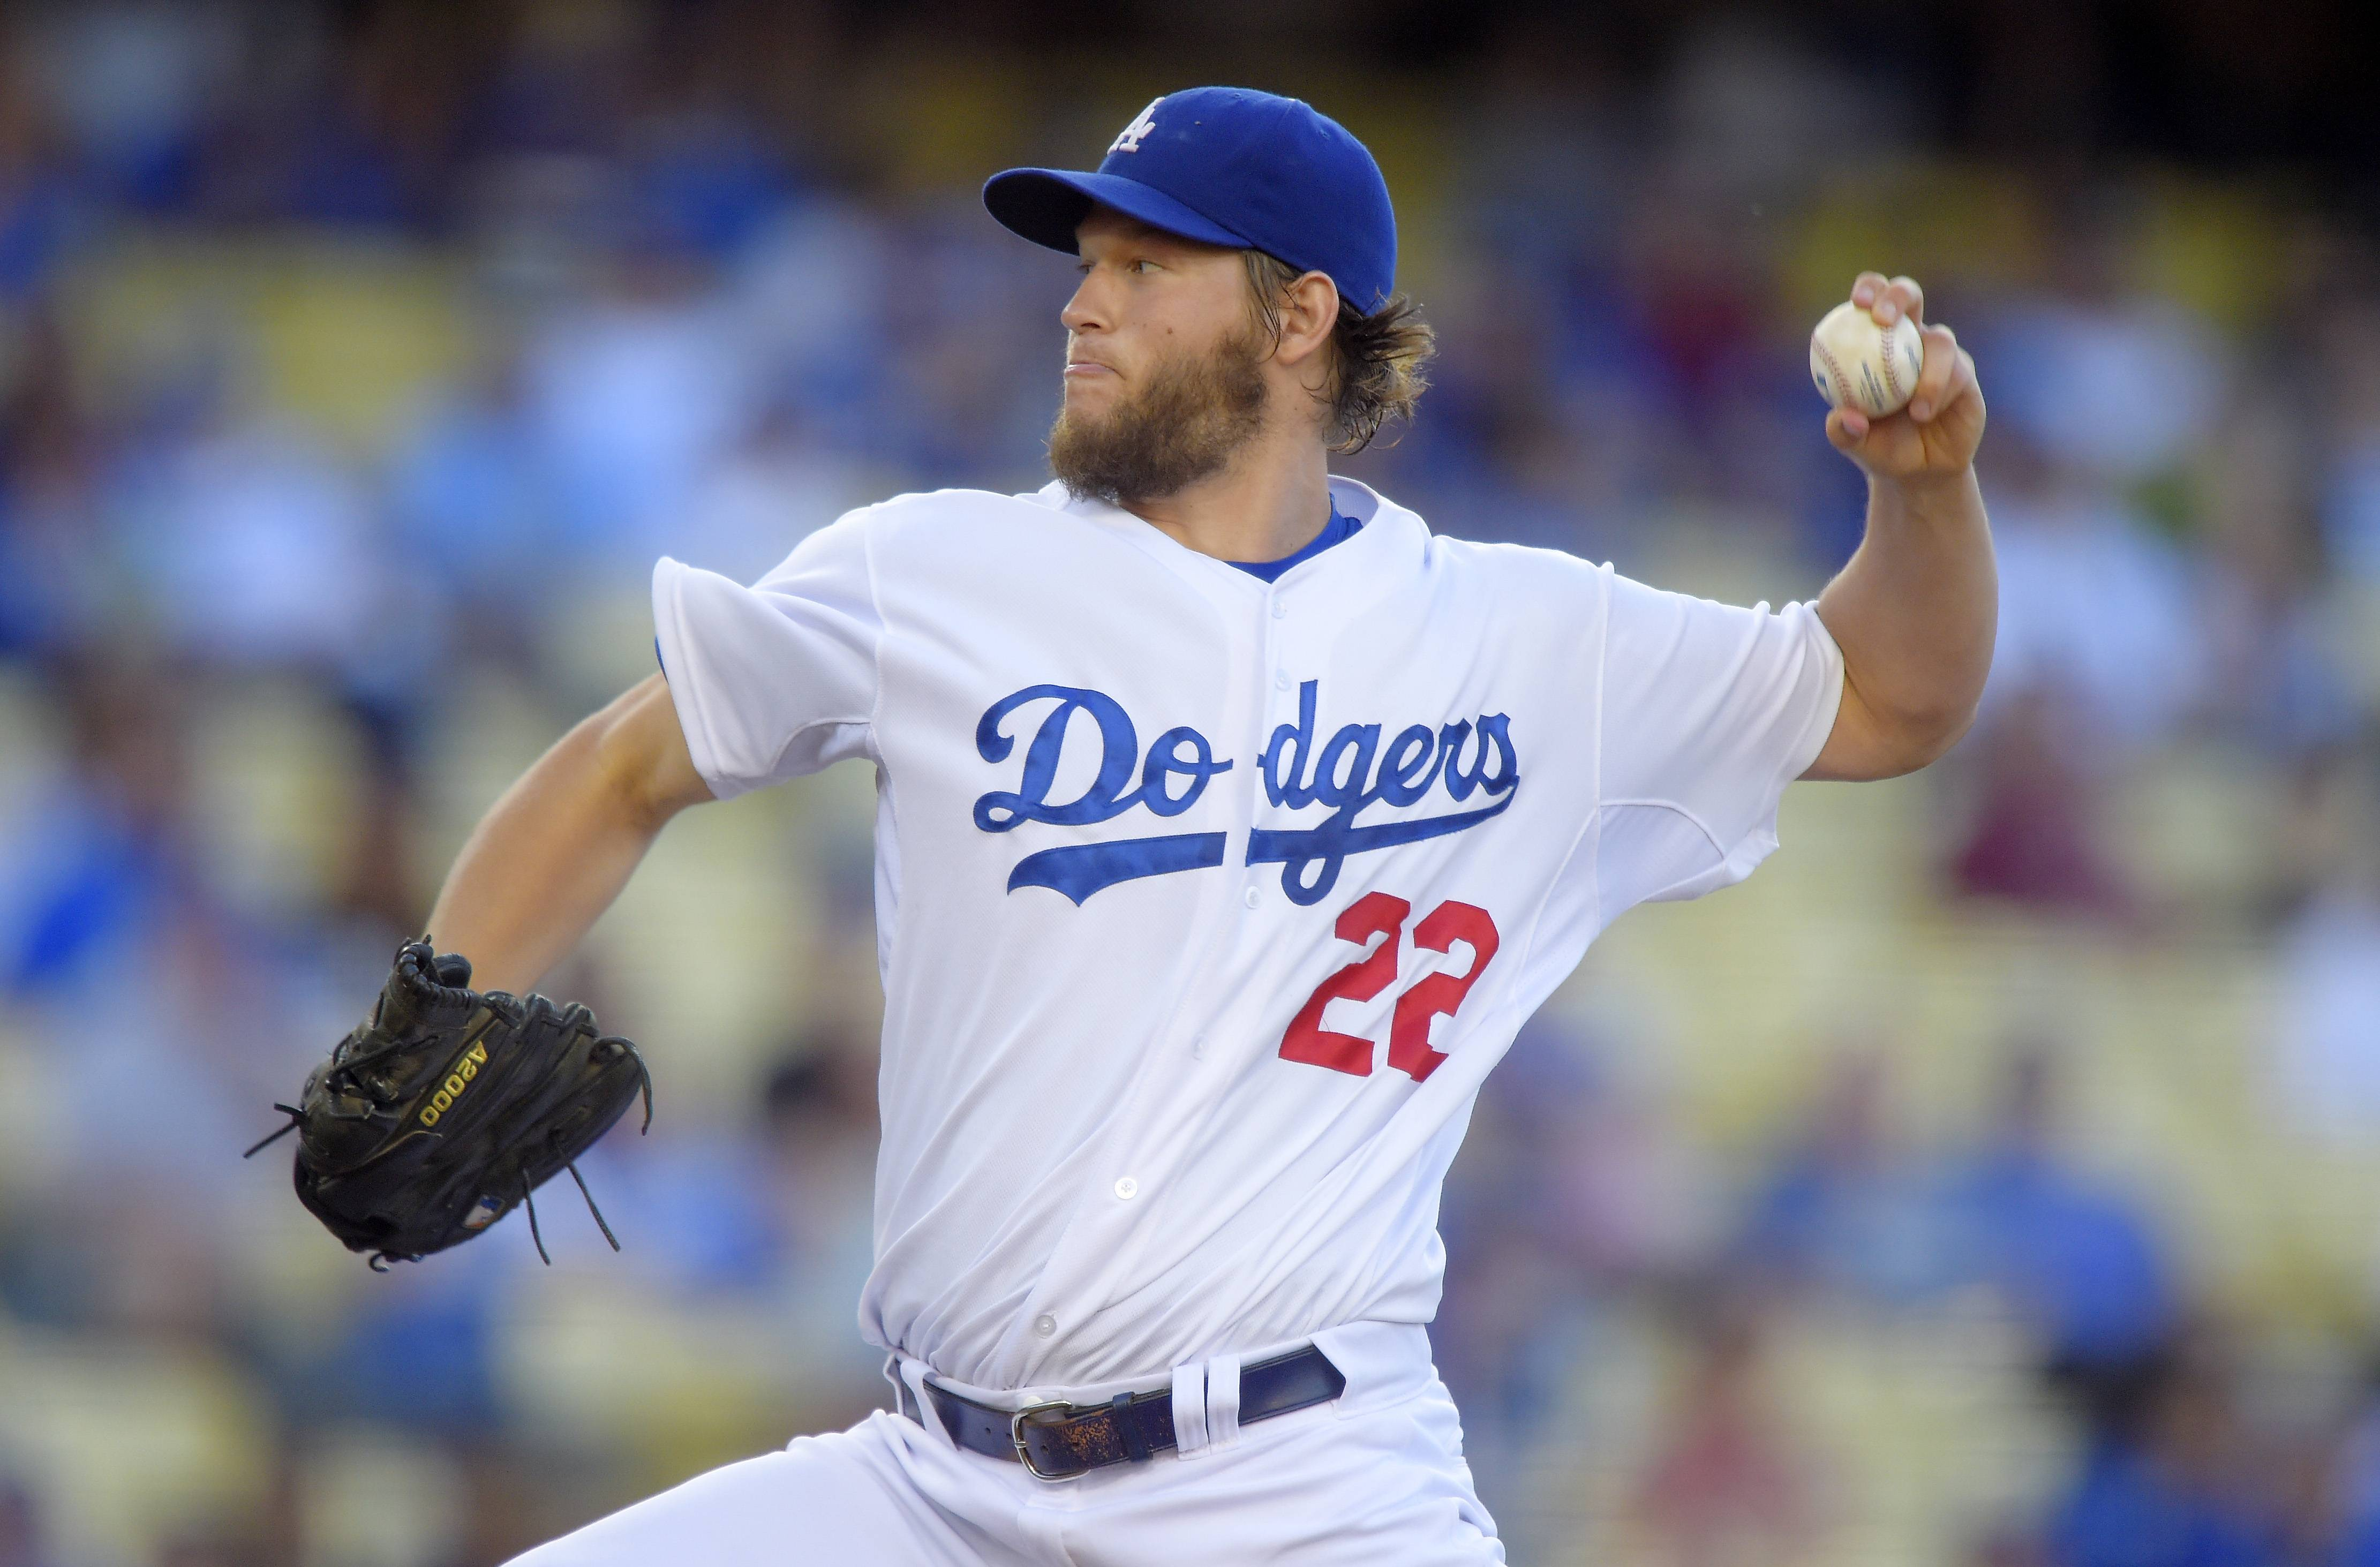 If home-field advantage in the World Series hinges on the outcome of the All-Star Game, then perhaps the NL should pitch Clayton Kershaw all nine innings. That won't happen, of course, but Scot Gregor believes other changes are in order.